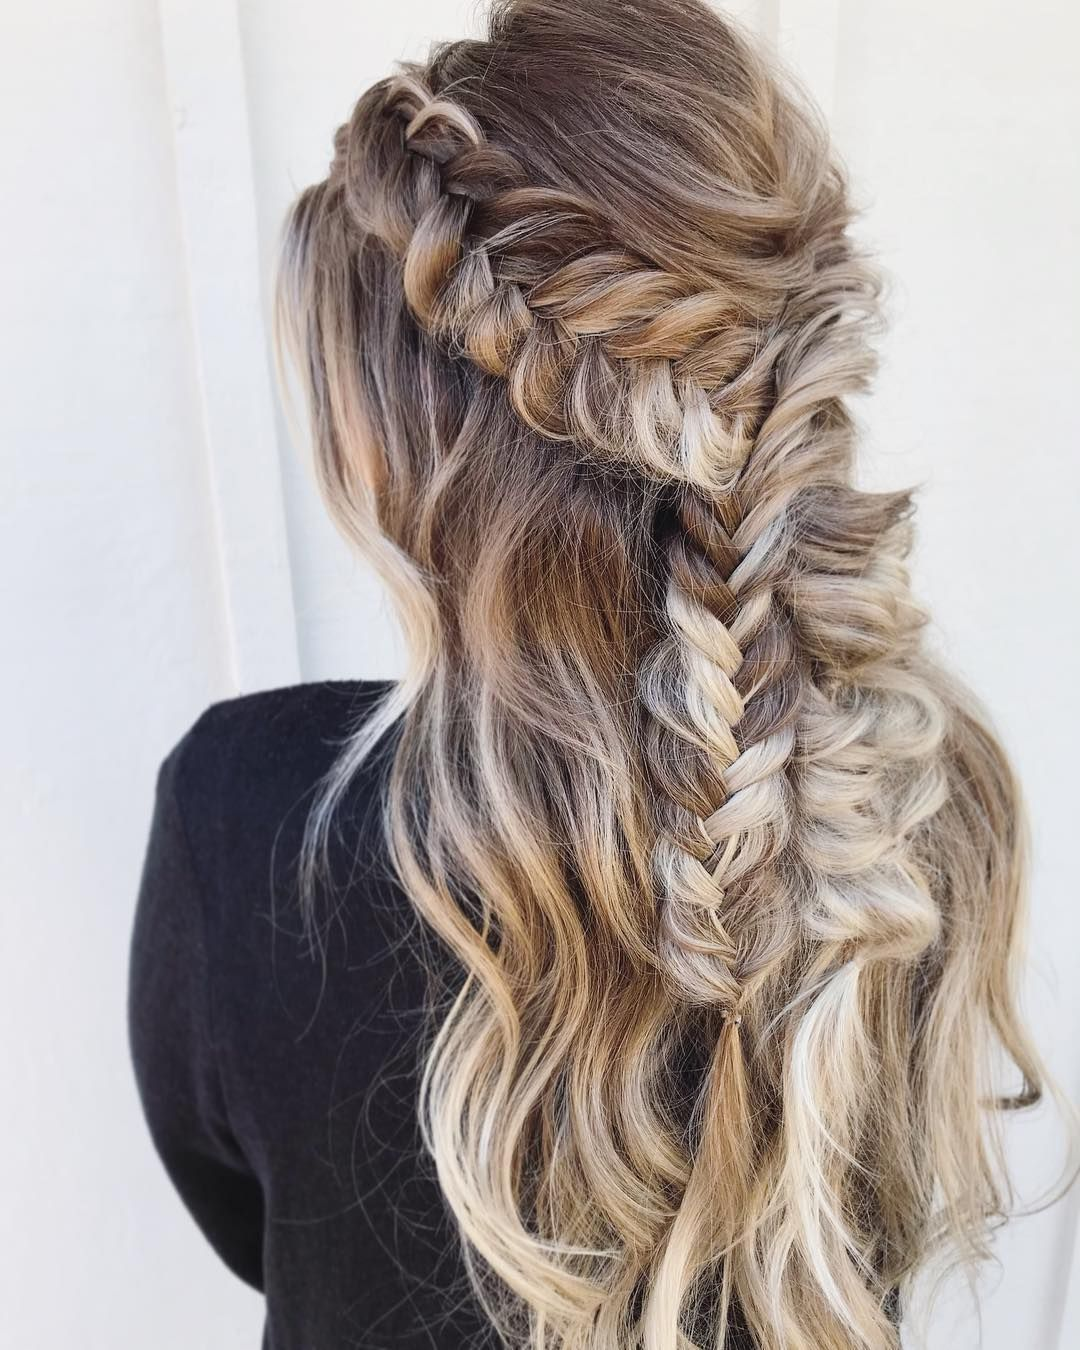 Beautiful Braided Half Up Half Down Hairstyle – Fabmood | Wedding Colors, Wedding Themes, Wedding color palettes